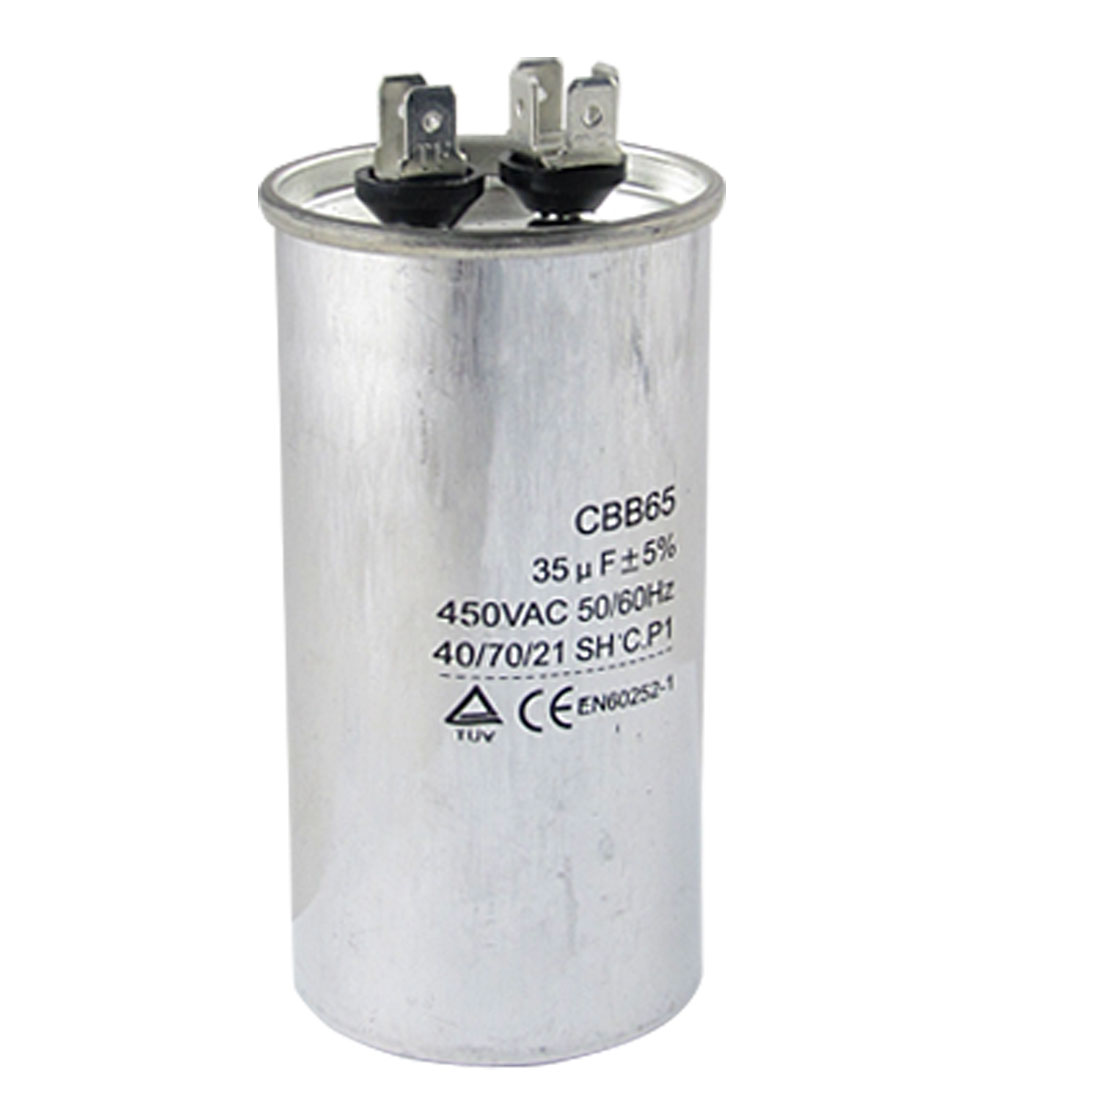 Air Conditioner 450VAC 35uF Metallized Polypropylene Film Motor Capacitor CBB65